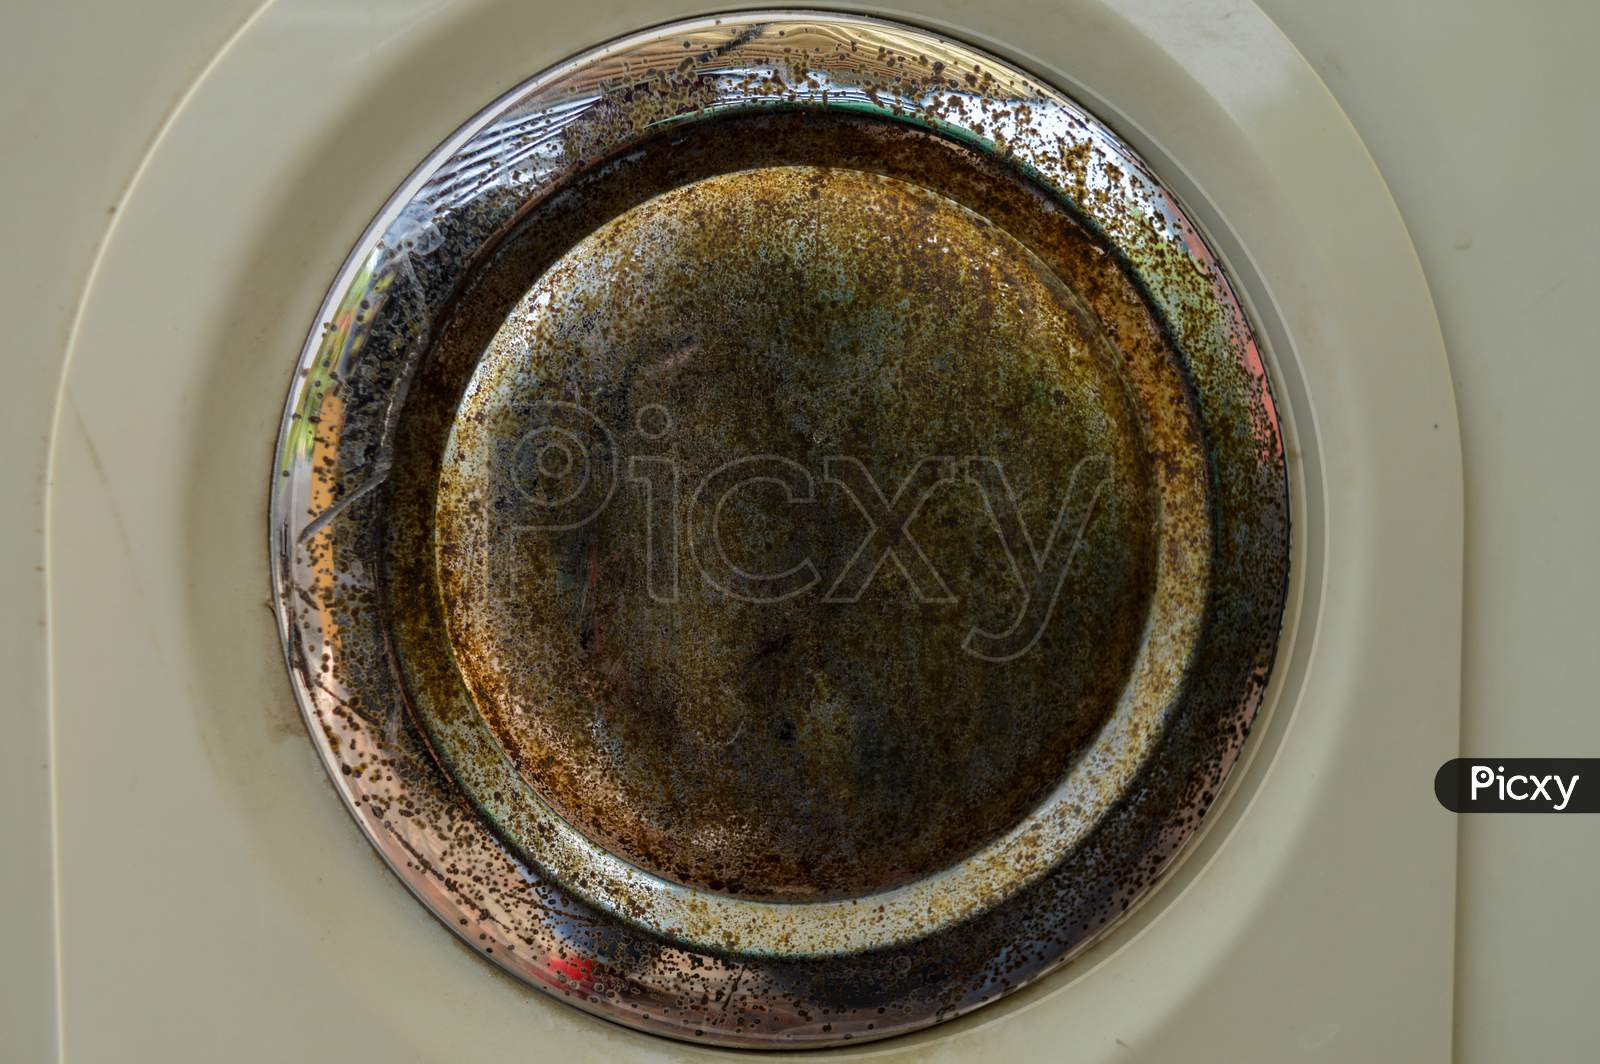 A Rustic Piece Of Steel Isolated On White Plastic.